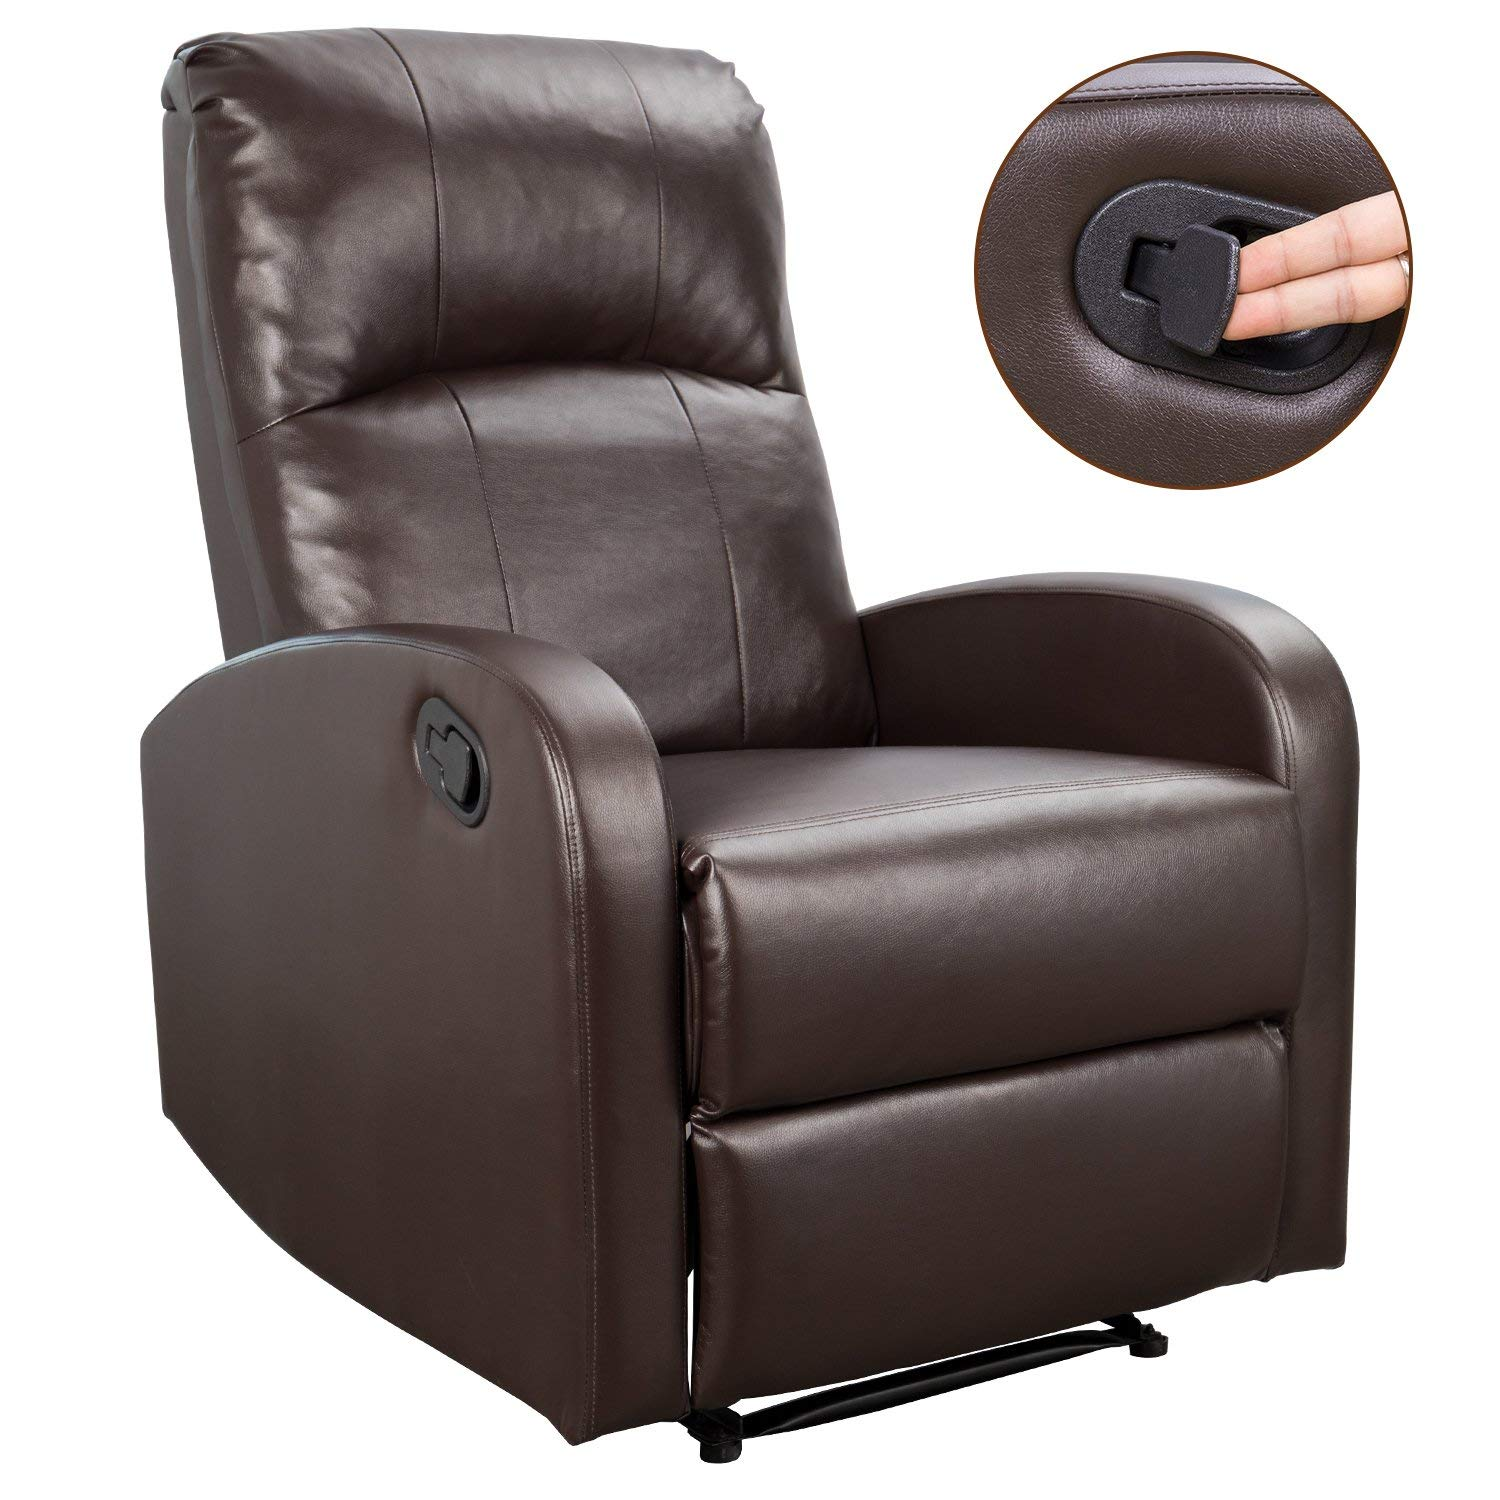 Amazon com homall phlbn recliner chair sofa home theater seating pu leather modern couch bright brown kitchen dining